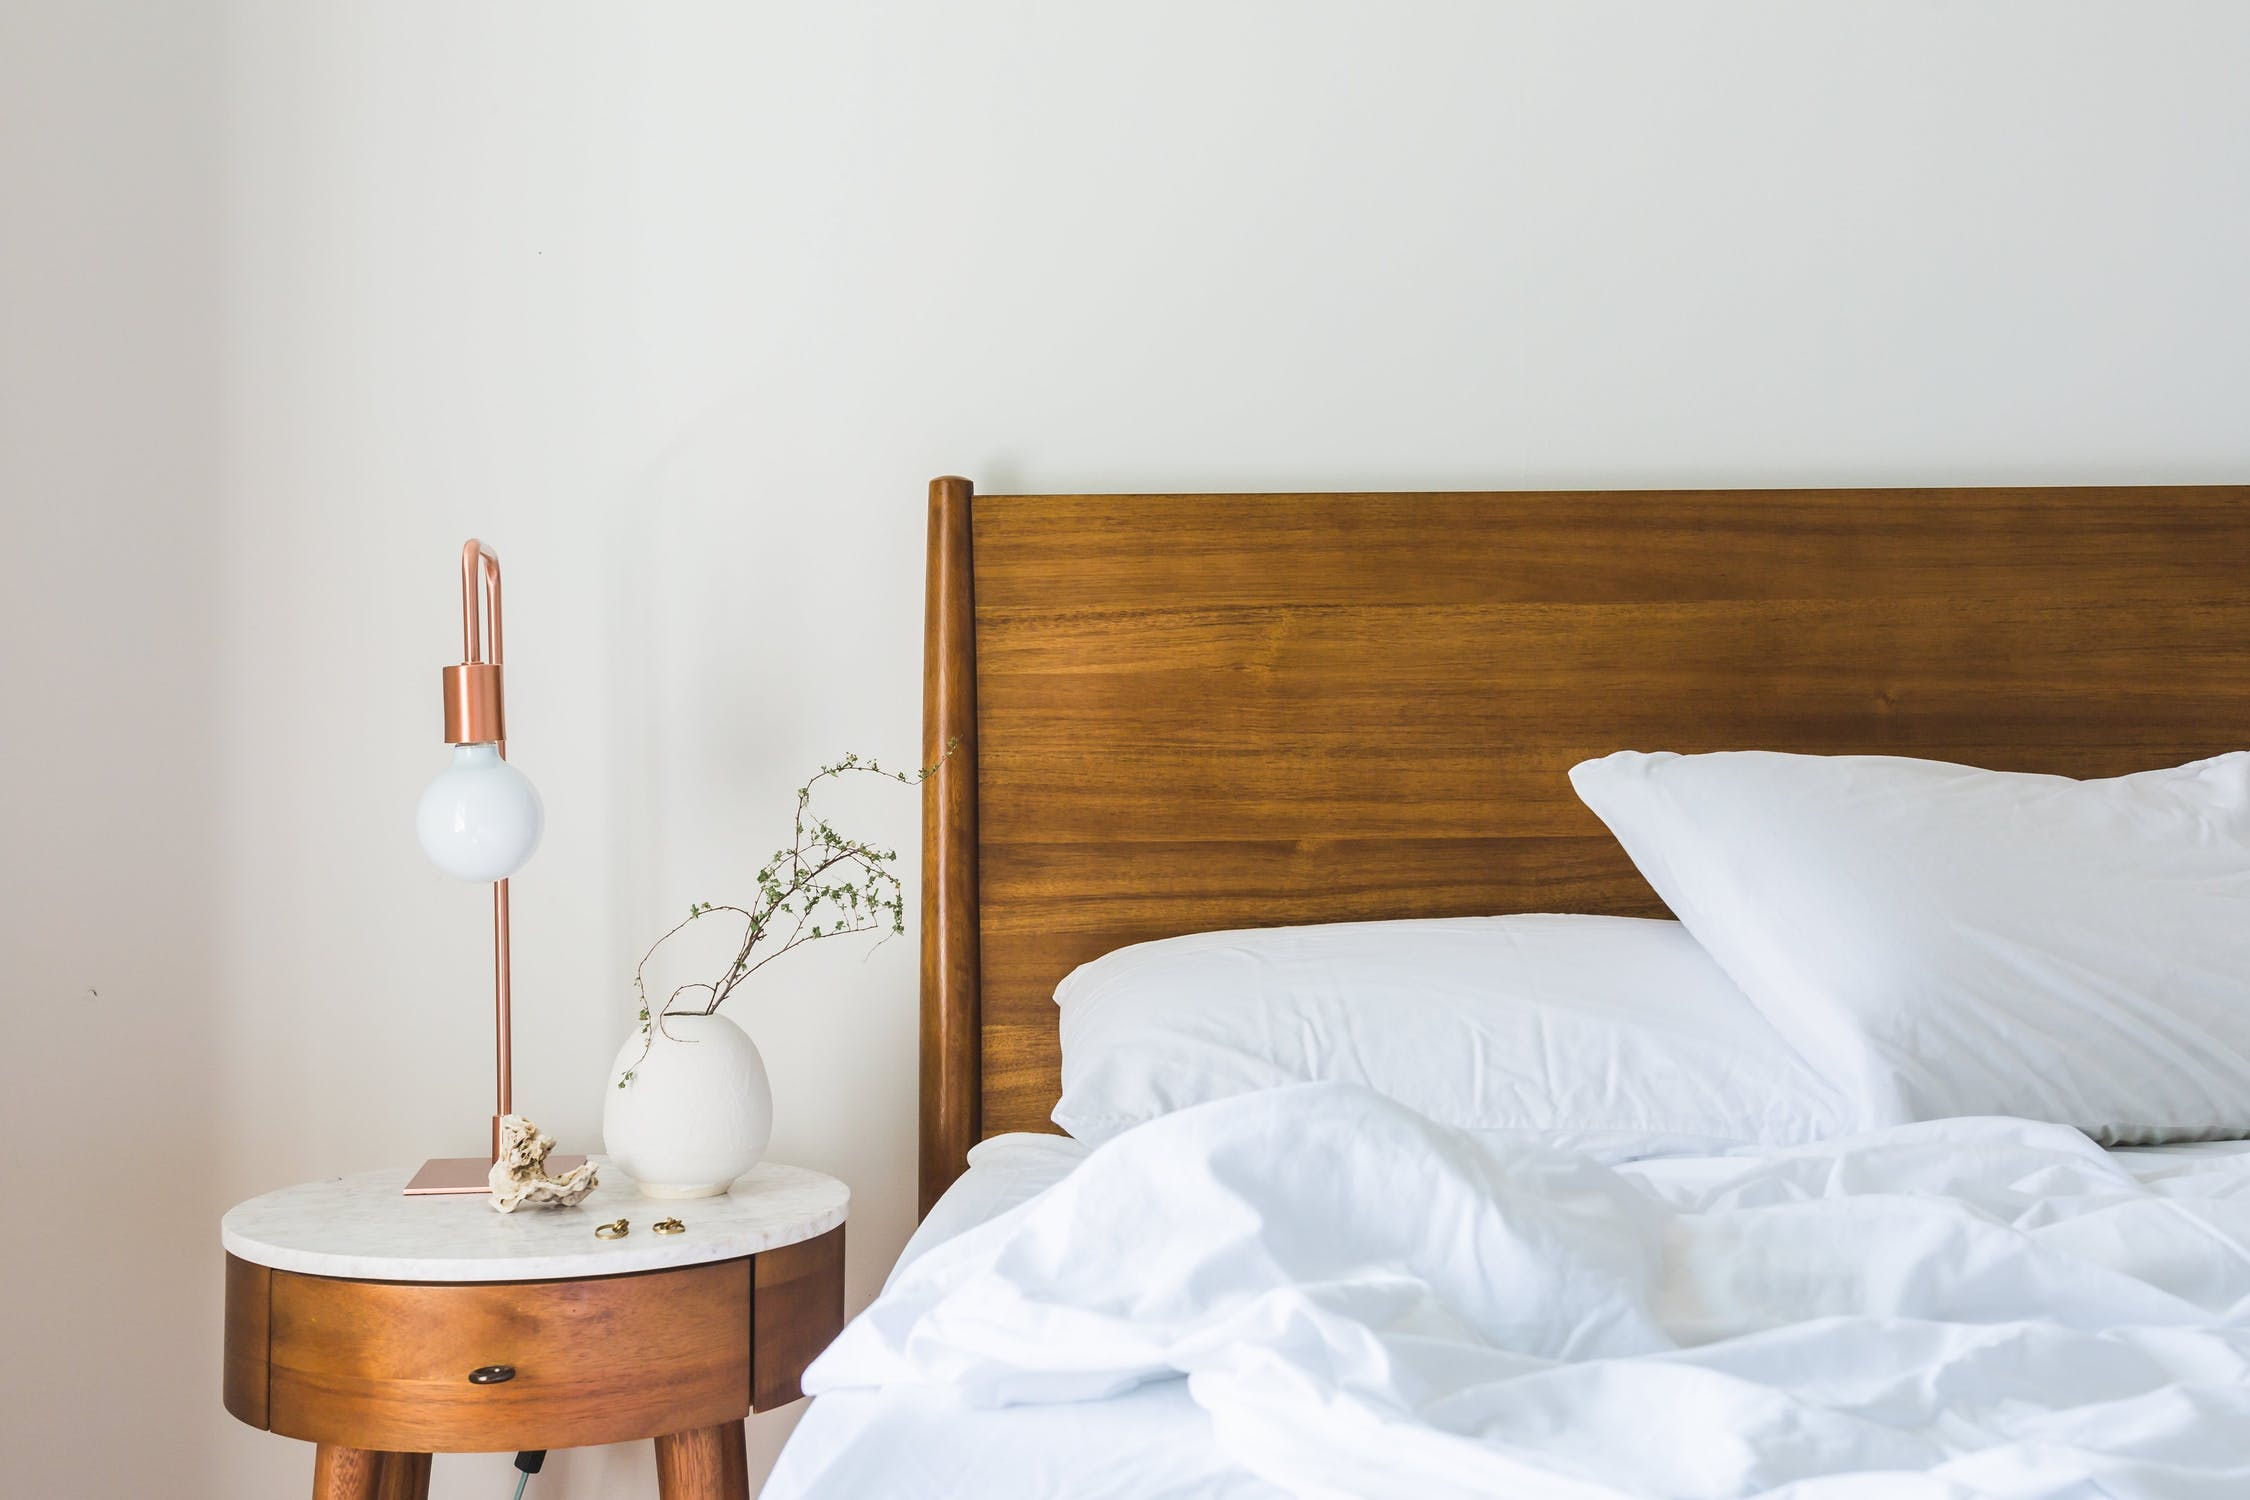 How To Properly Clean Your Mattress by Cleanhome Sussex